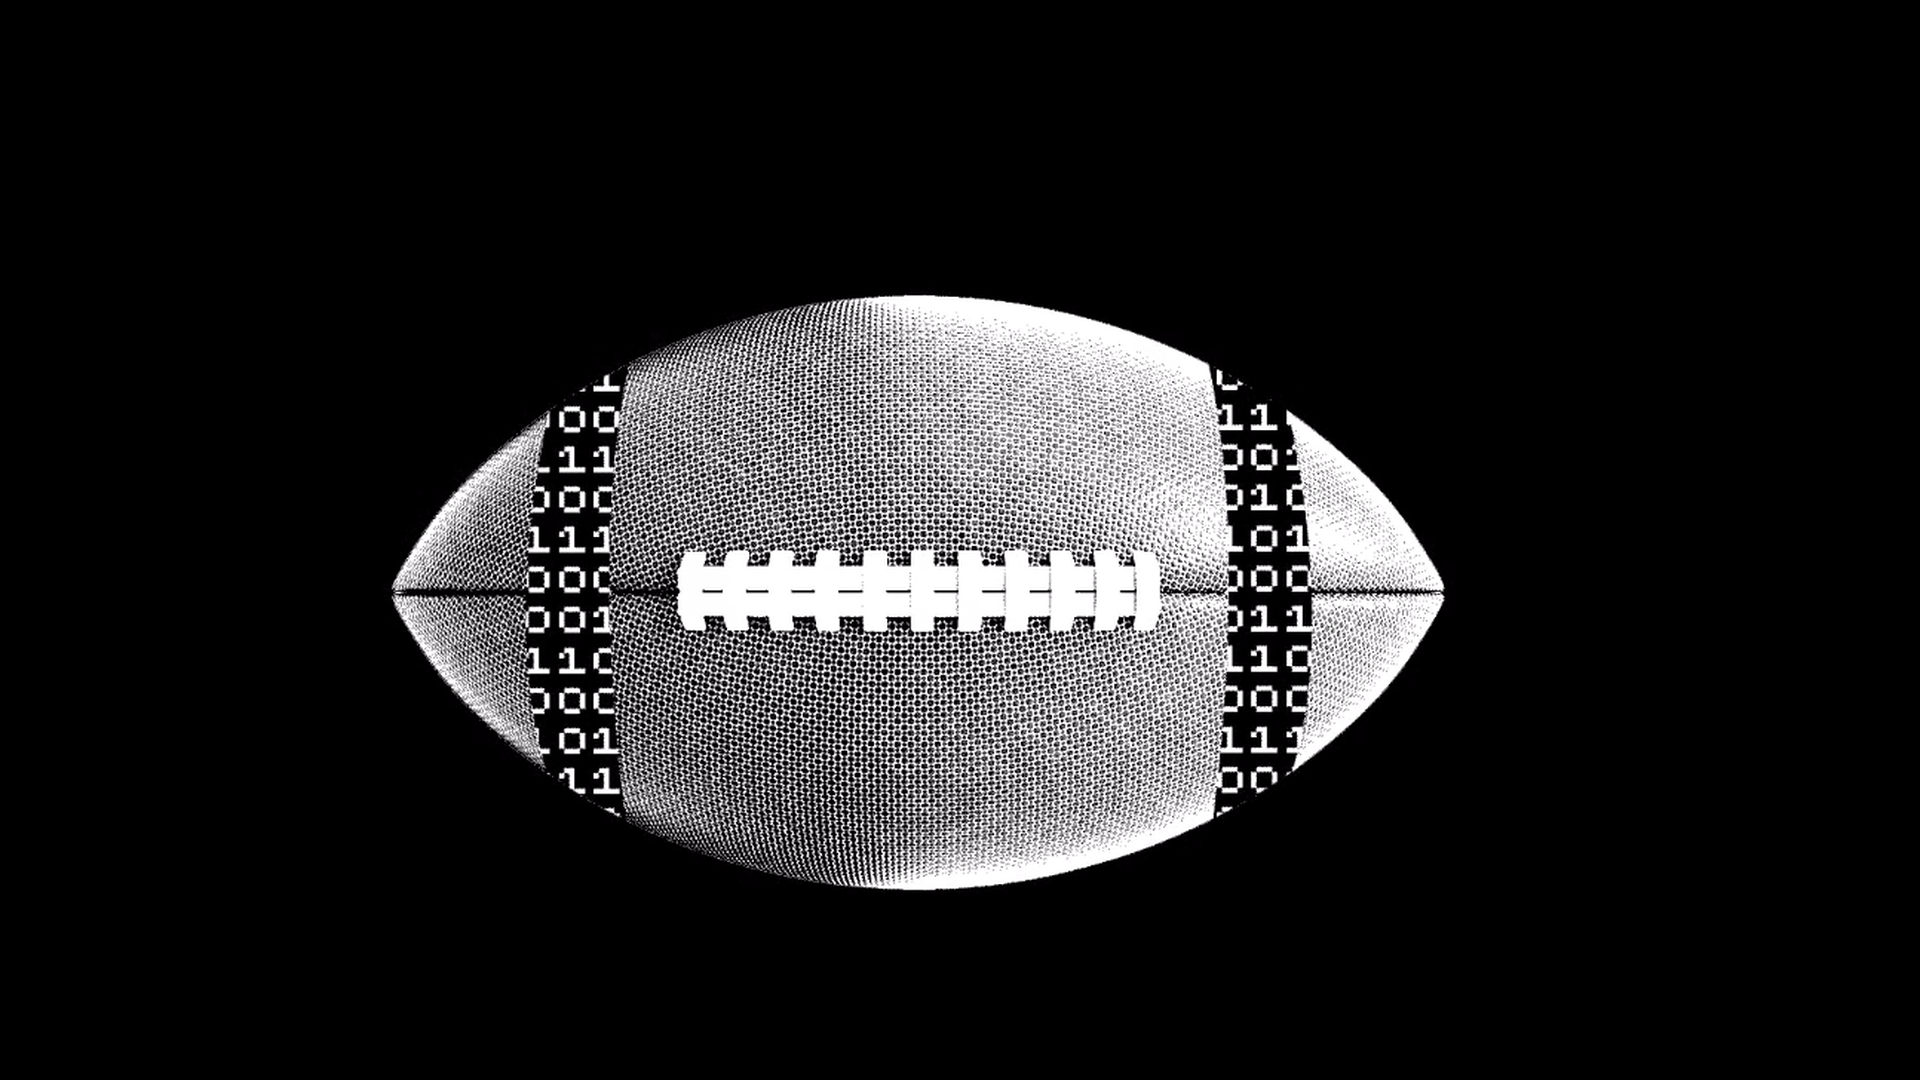 In this illustration, two strings of data decorate opposite ends of a football.